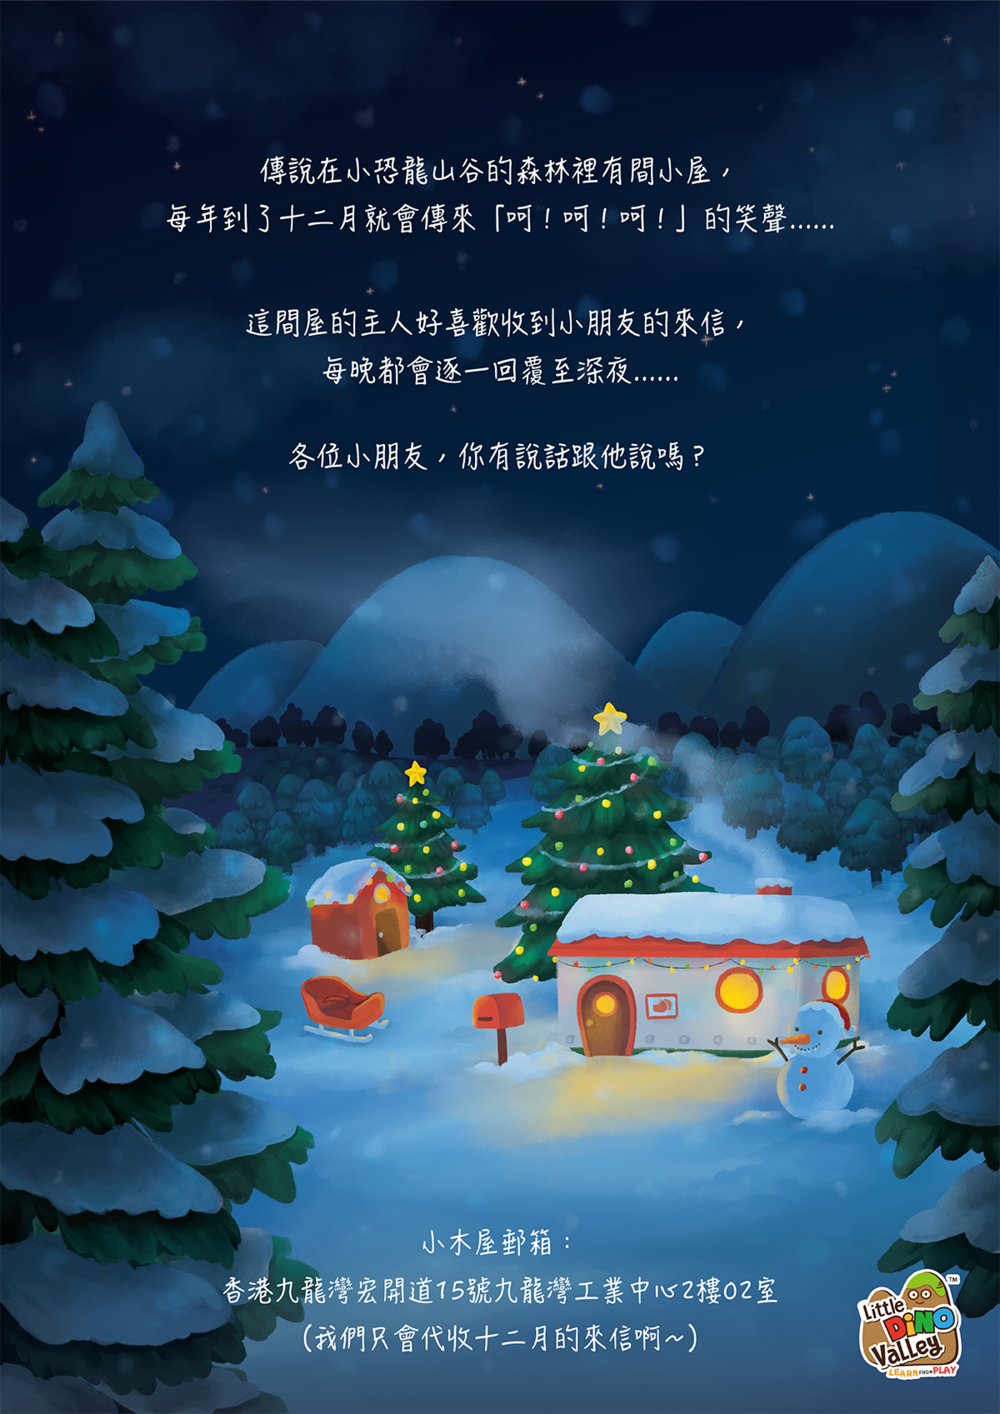 XmasLetterEvent2018-01s.png